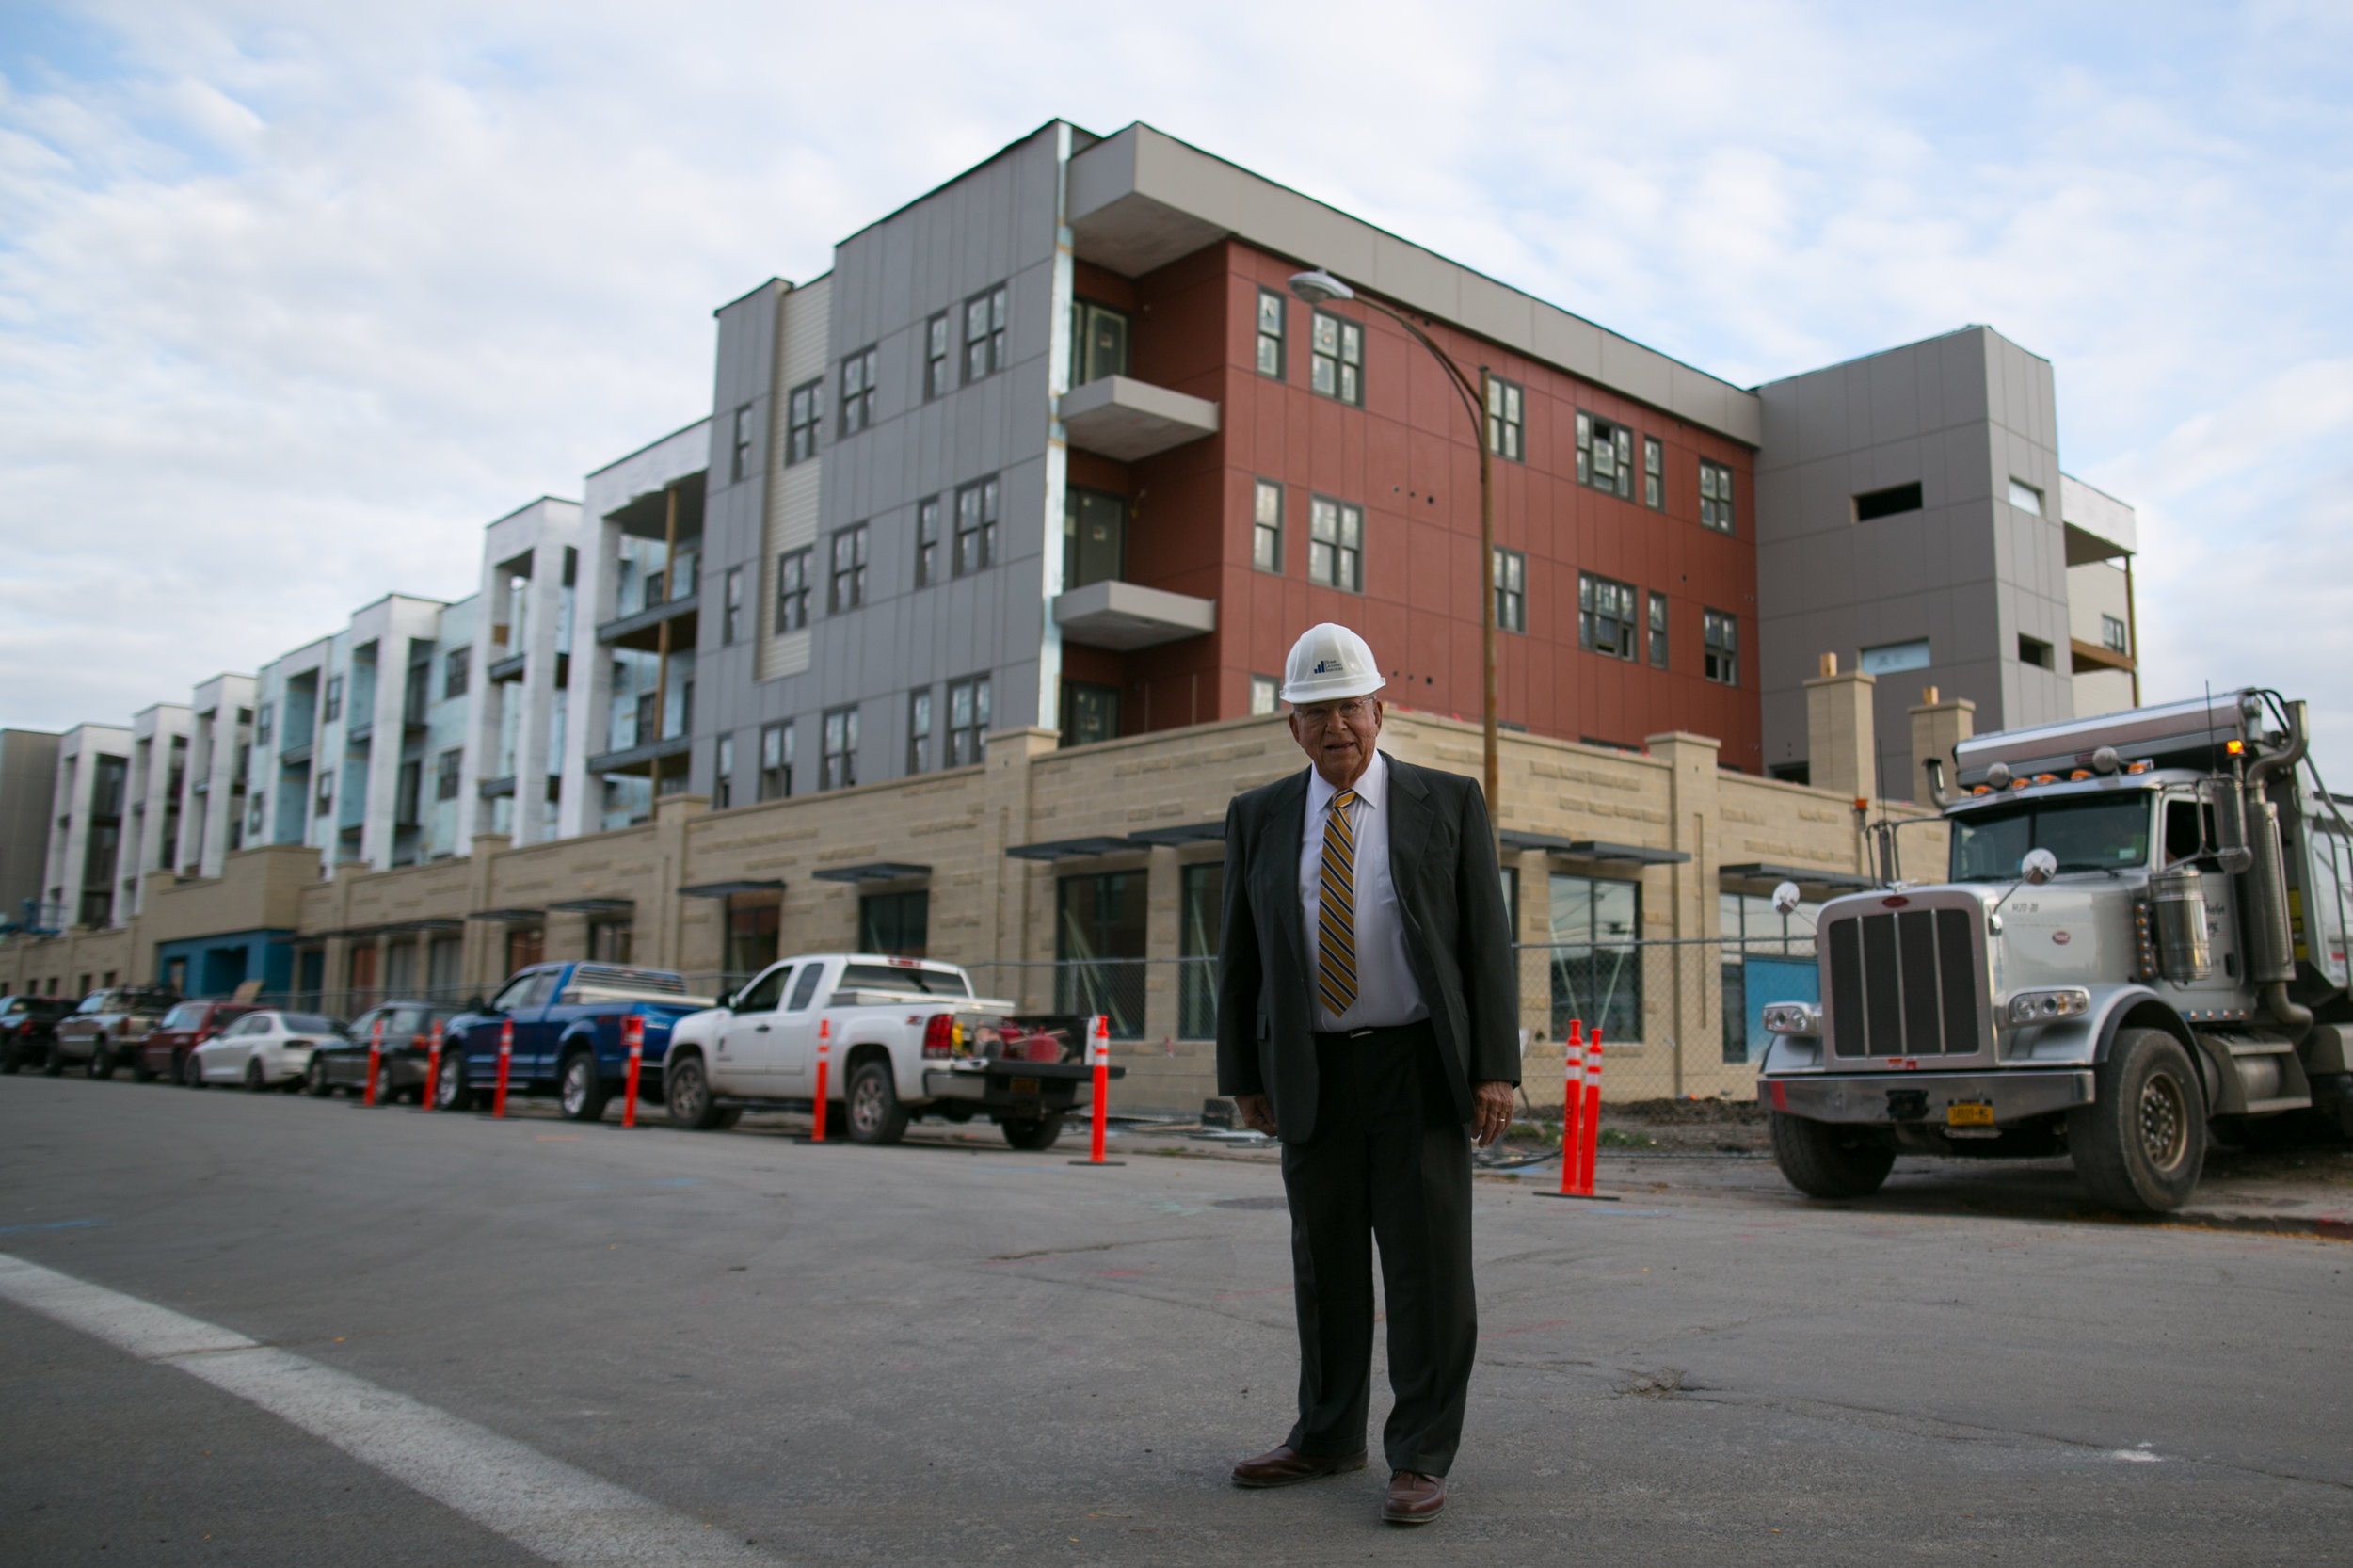 Nelson Leenhouts, President and CEO of Home Leasing LLC, is photographed at the company's Charlotte Square site in Rochester, New York. The first phase of the project includes 74 apartments, expected to be ready in November 2016.